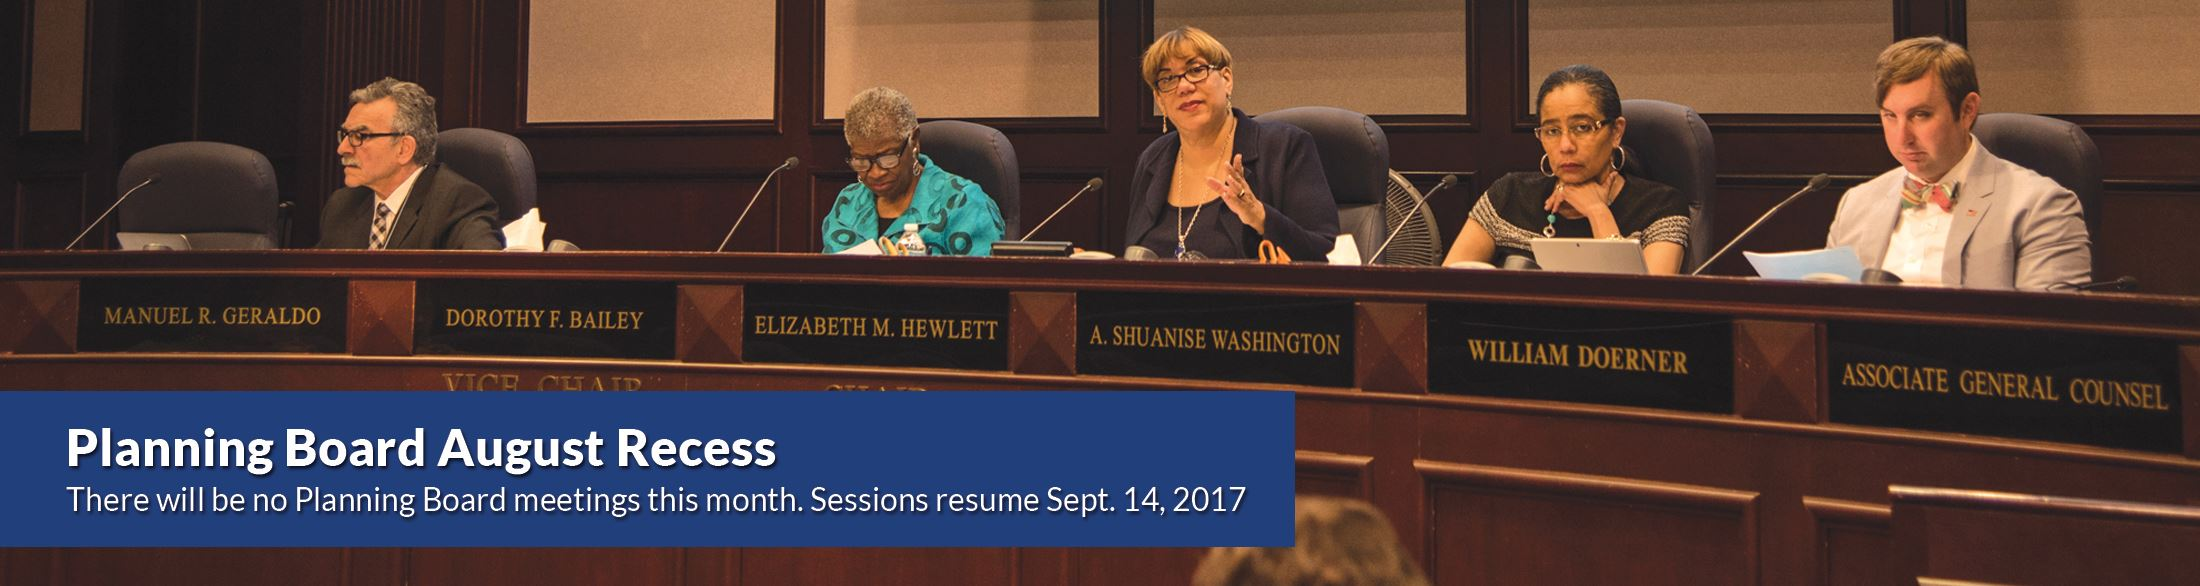 The Prince George's County Planning Board is in recess for the month of August 2017. Sessions wil